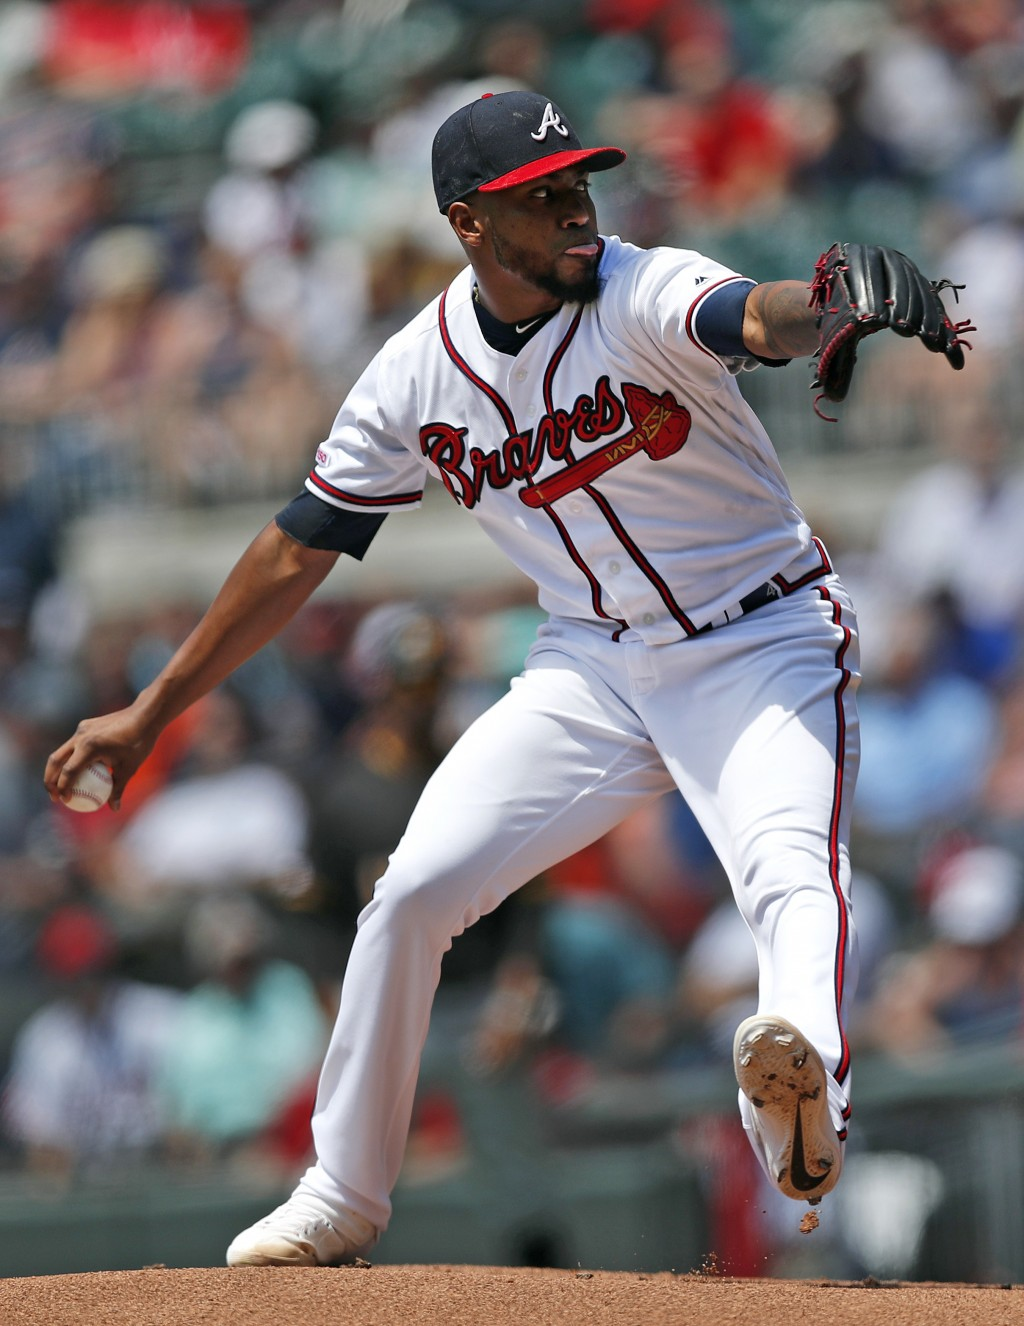 Atlanta Braves starting pitcher Julio Teheran works against the Pittsburgh Pirates in the first inning of a baseball game Thursday, June 13, 2019, in